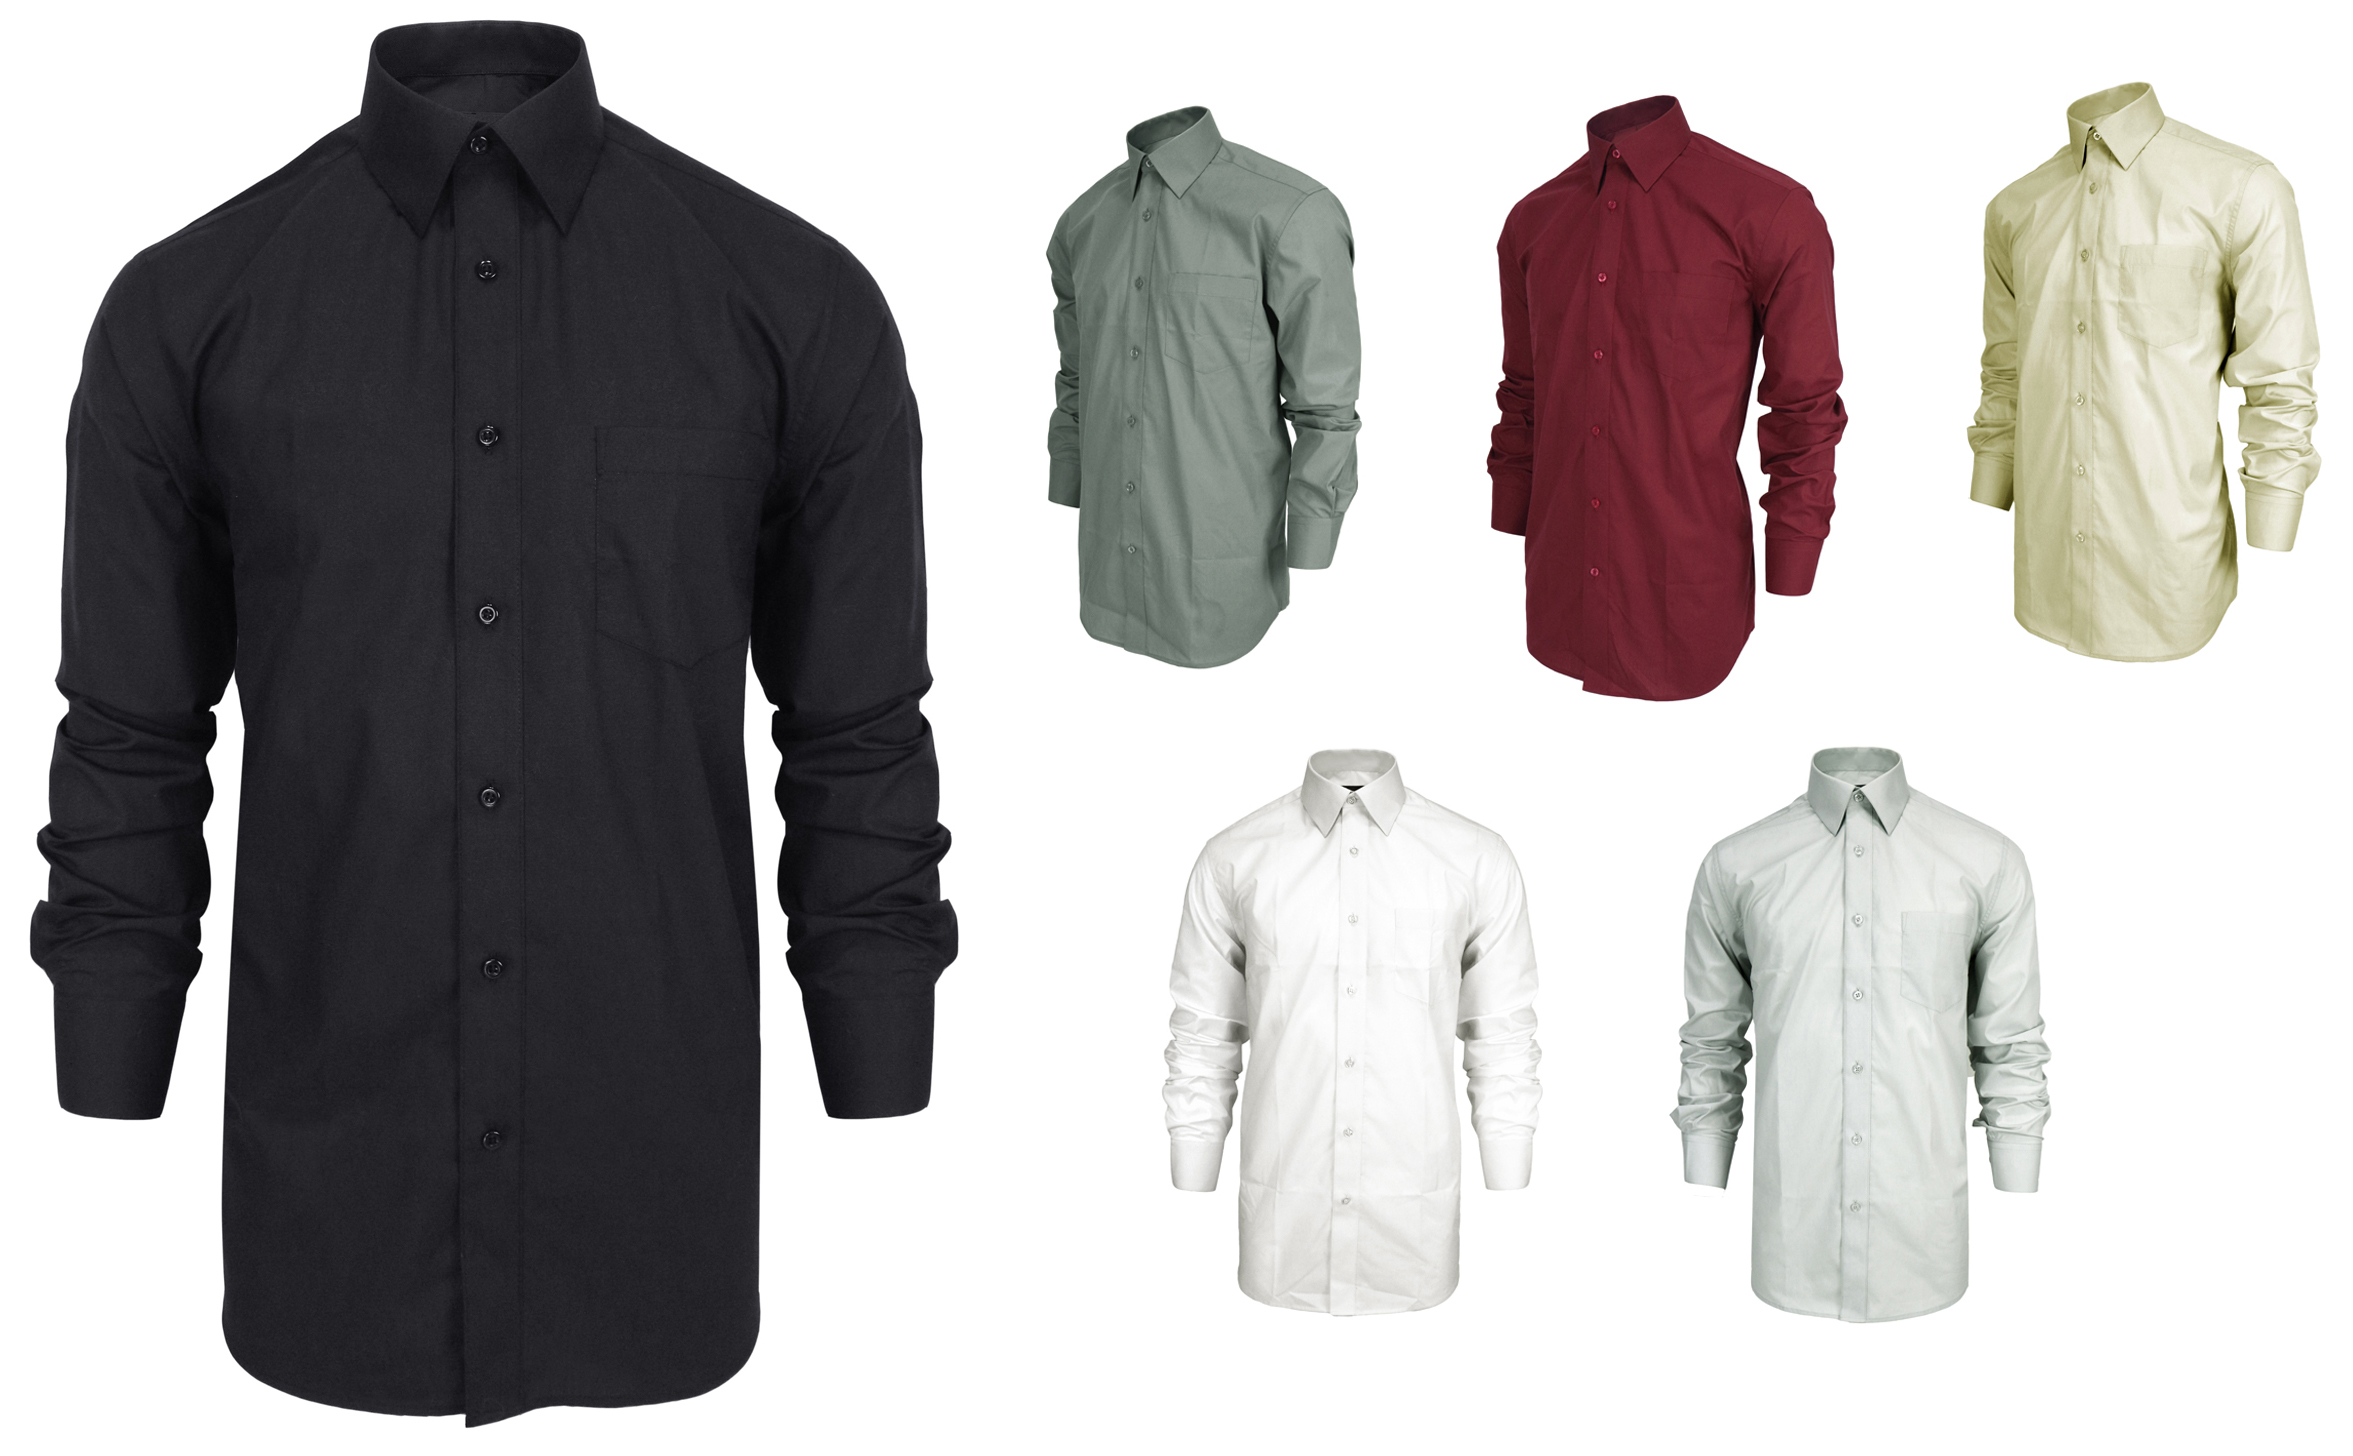 Men's Long Sleeve Button Down DRESS Shirts w/ Front Pocket - Solid Colors - Sizes Small-2X